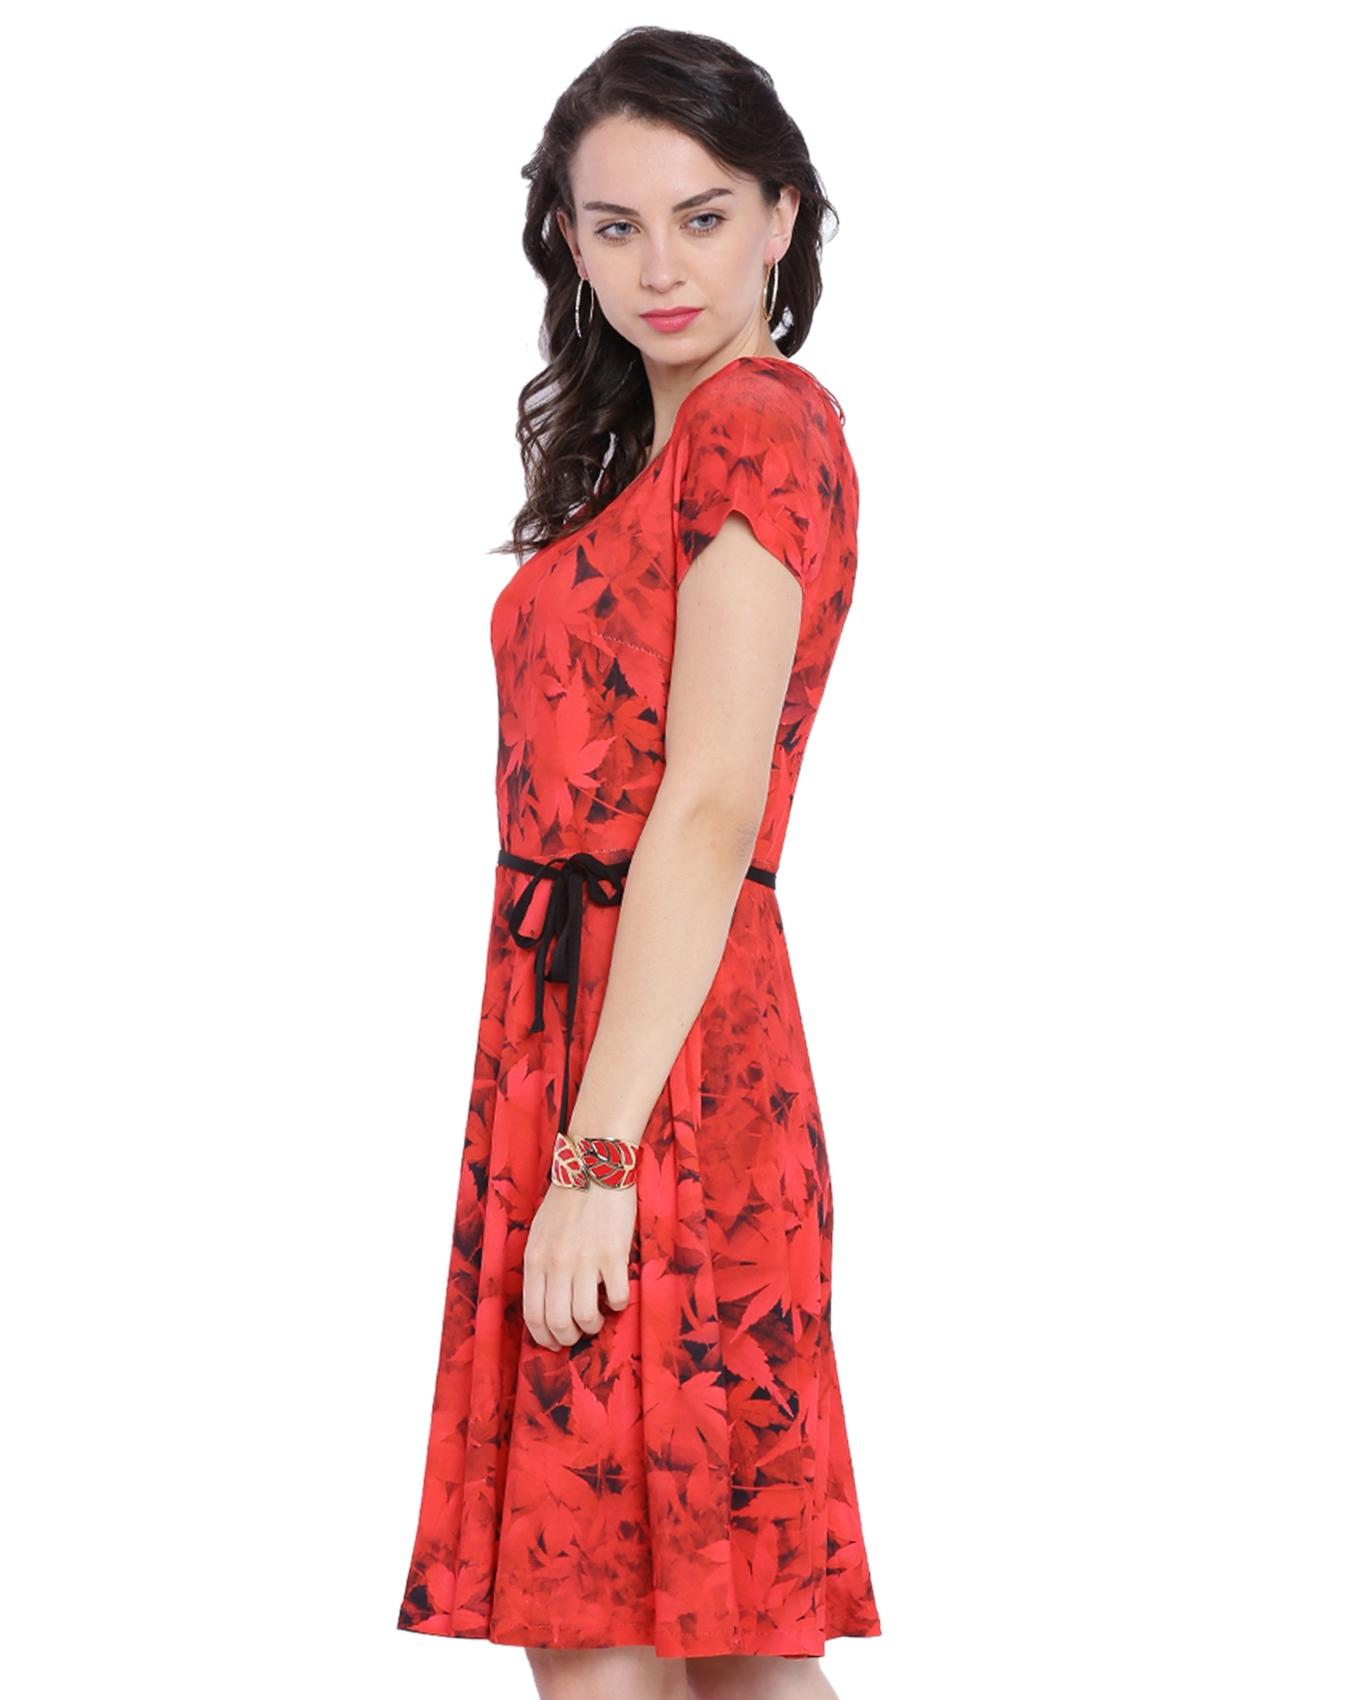 c38f9c7d1e Party Frocks in Sri Lanka - Womens Party Dresses in Sri Lanka